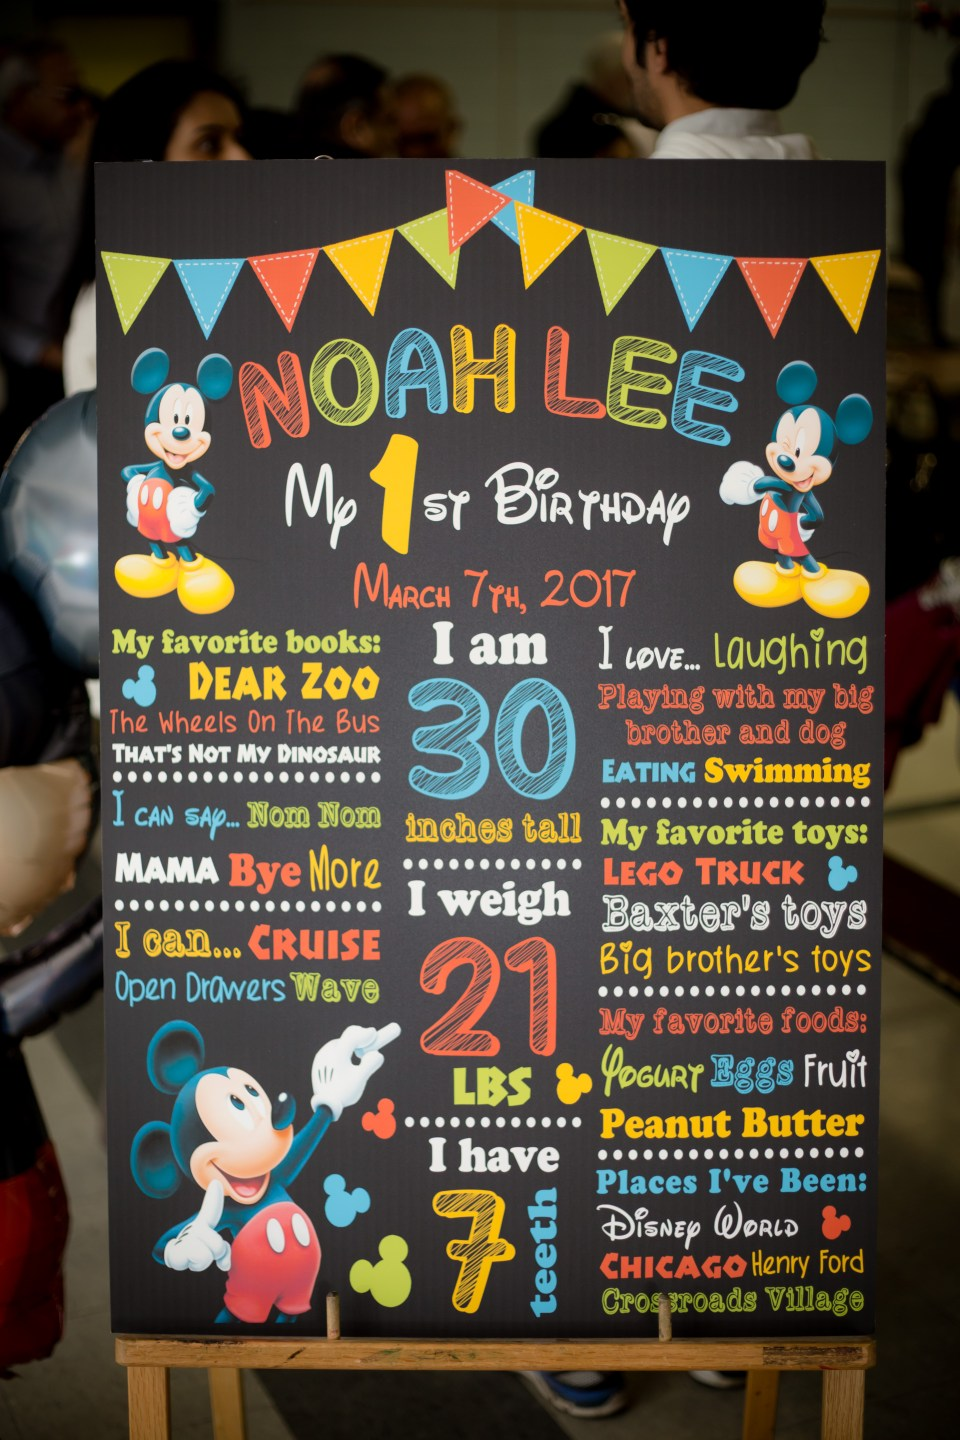 Noah Lee Turns 1-2